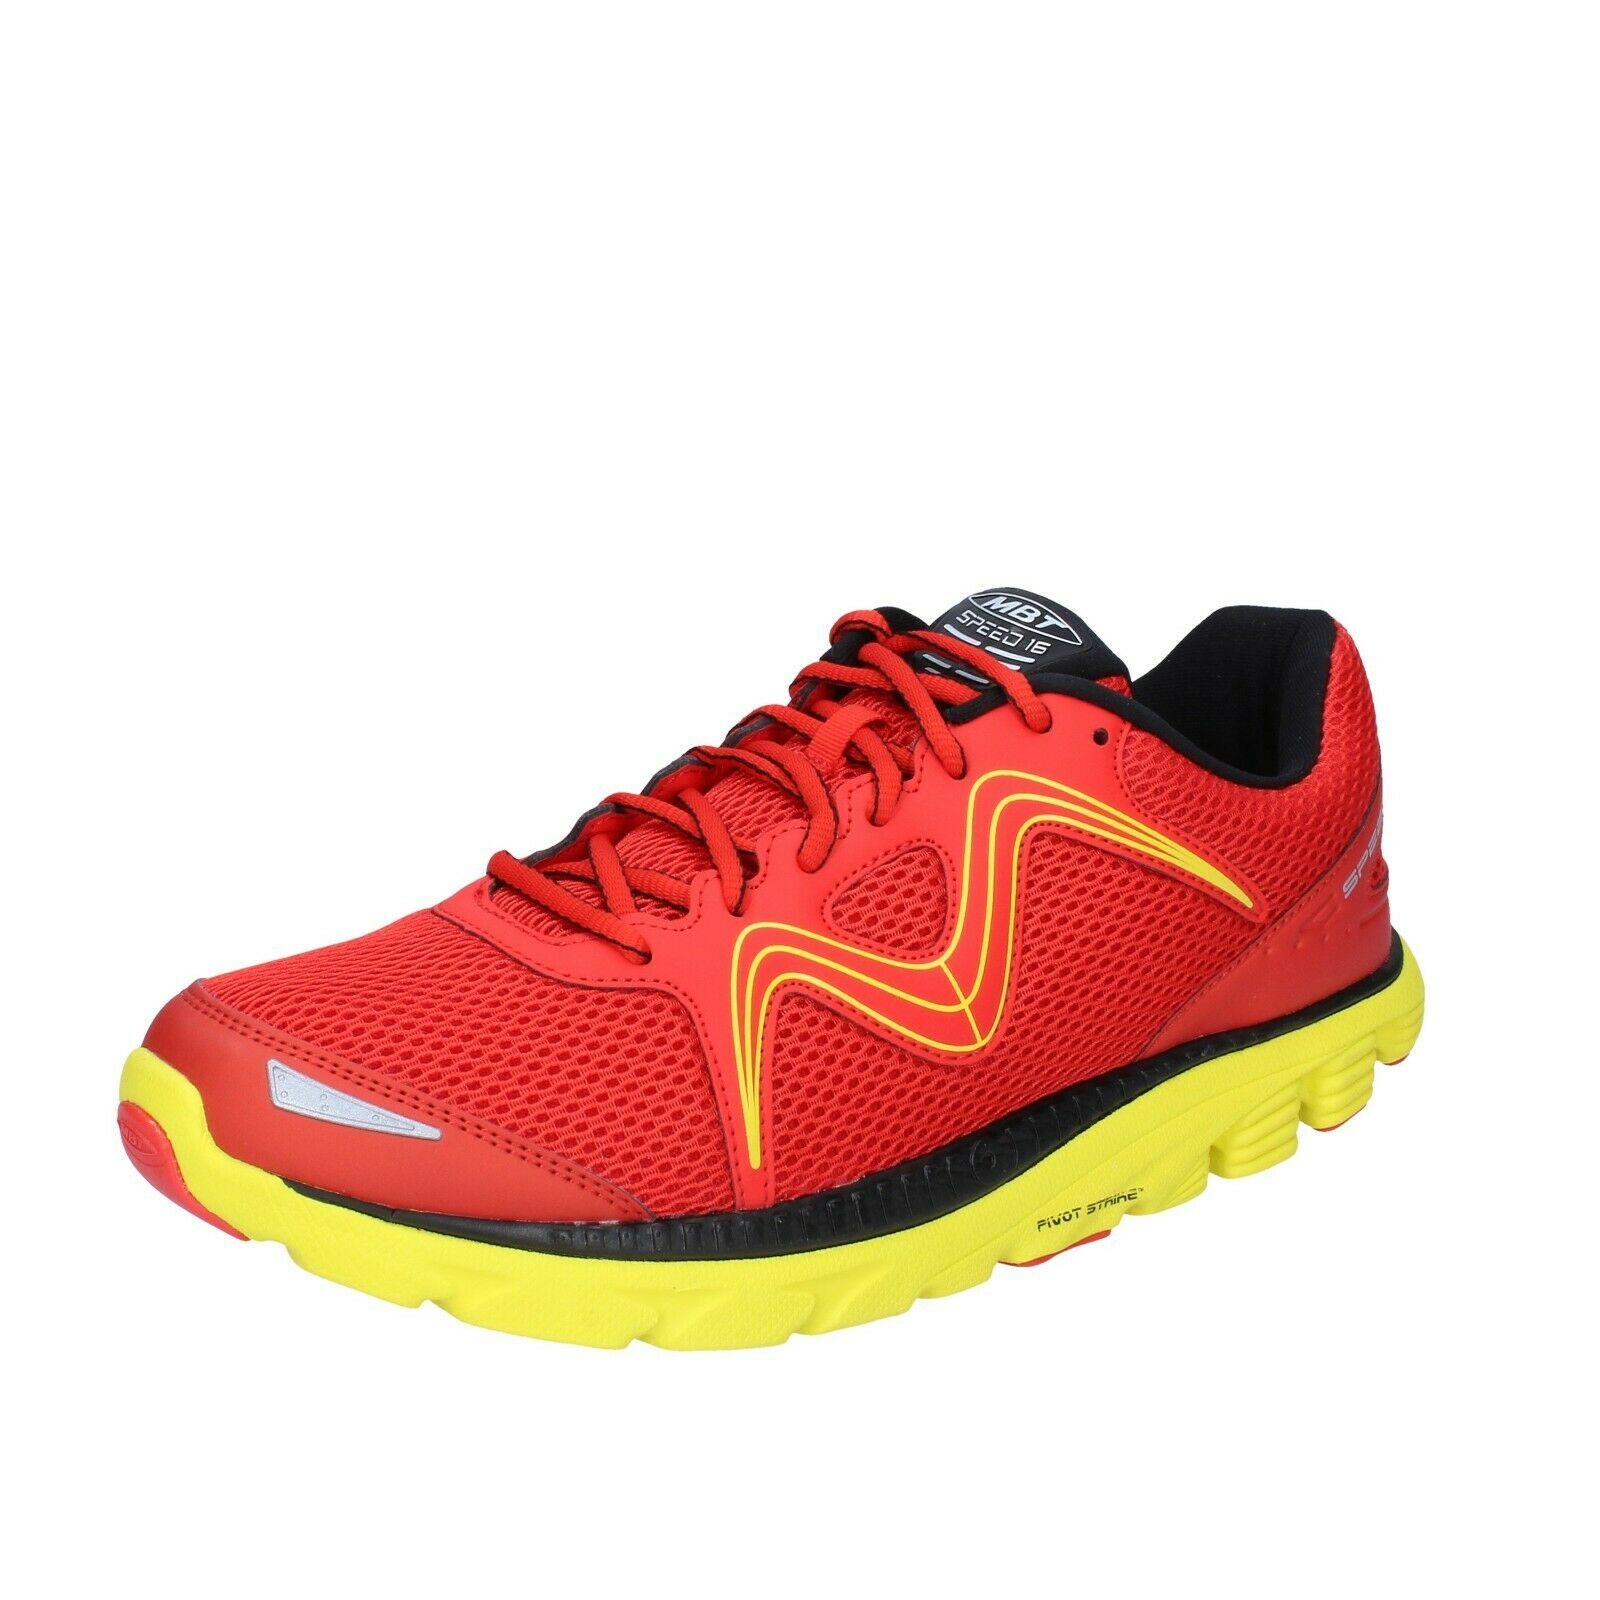 Men's shoes MBT 10,5 () sneakers red textile lightweight BS378-44,5